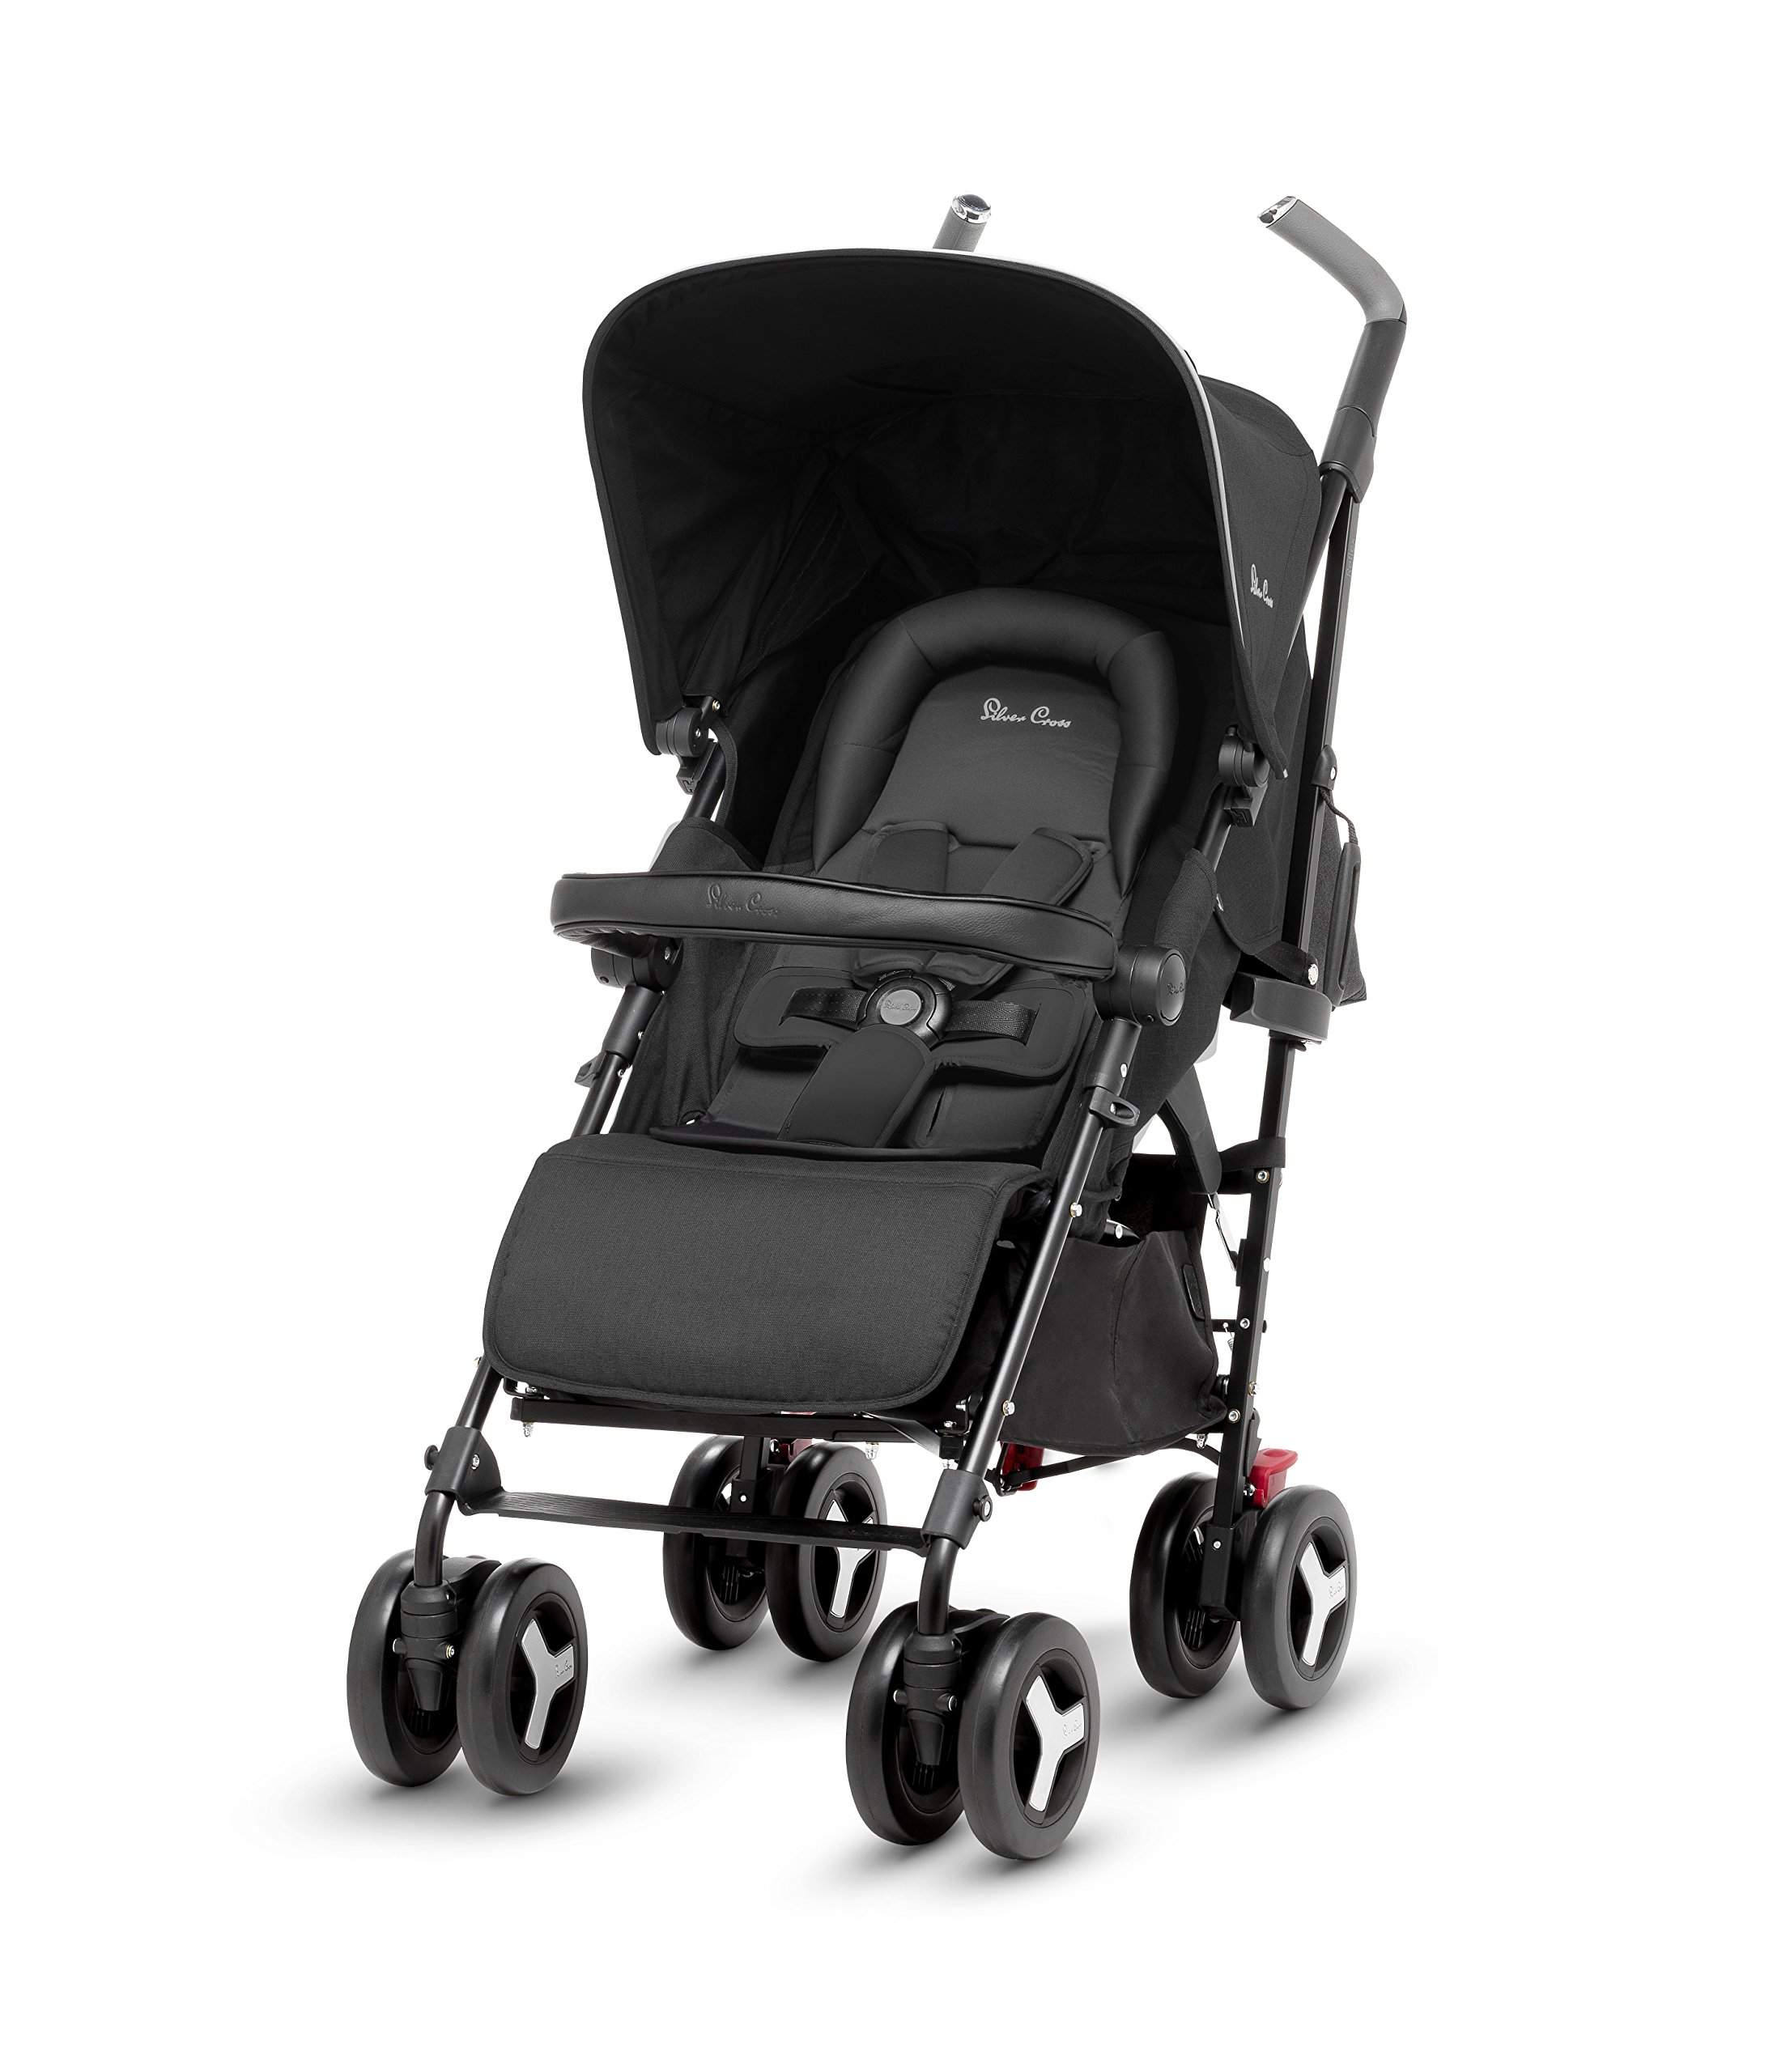 Silver Cross Reflex Stroller, Onyx Silver Cross Reflex is an advanced stroller, suitable from birth up to 25kg, with a wealth of features 5-point Harness Combine with Silver Cross Simplicity Car Seat to create a convenient Travel System 4